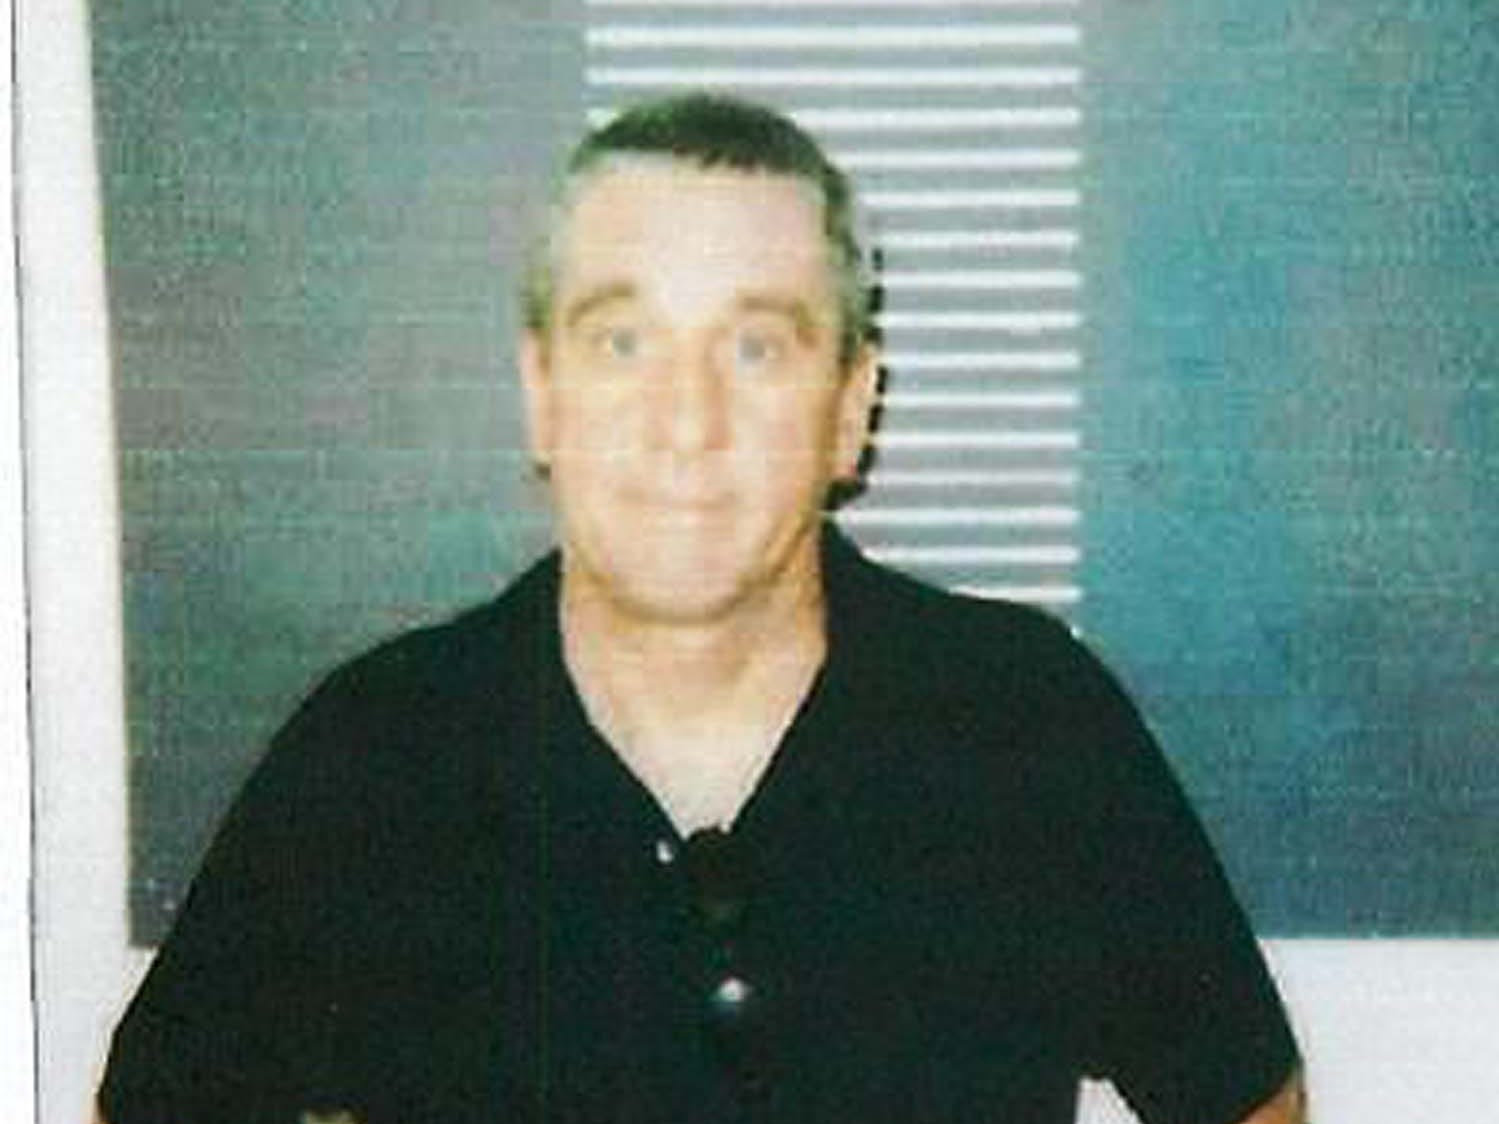 John Stephen O'Connor, 68, is wanted by the Nevada Department of Public Safety's Investigation Division for manufacturing marijuana. He is 5 feet 10 inches tall and weighs 200 pounds. He has gray hair and blue eyes. He is known to abuse alcohol and has violent tendencies. He also has ties in California, Wisconsin and Minnesota.